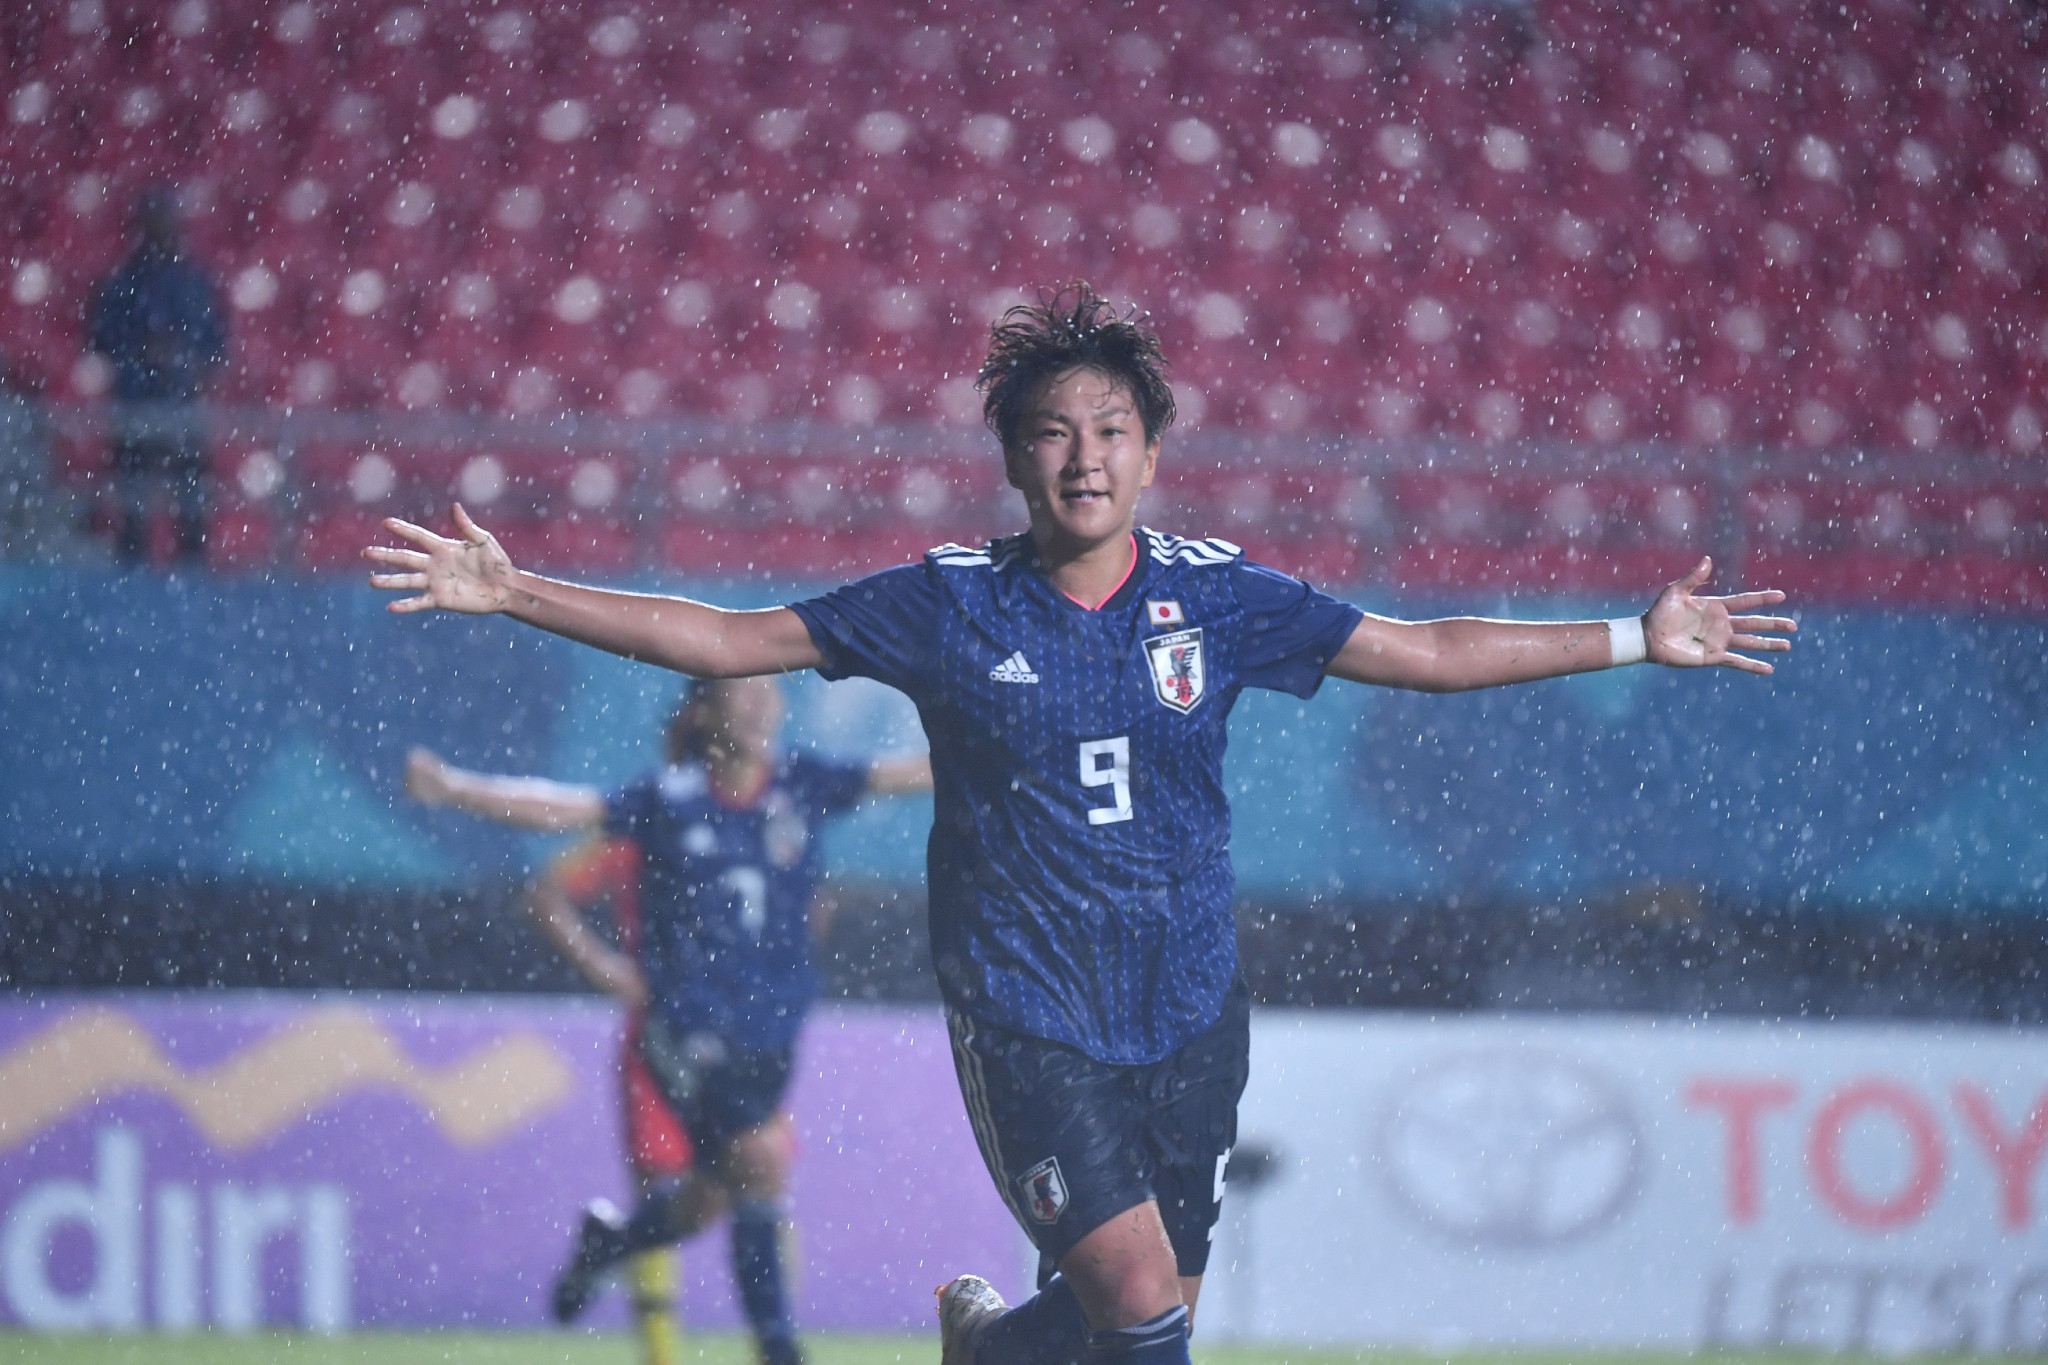 Substitute Yuika Sugasawa scored a last-minute winner as Japan beat China 1-0 to re-gain the Asian Games women's football title today ©Getty Images